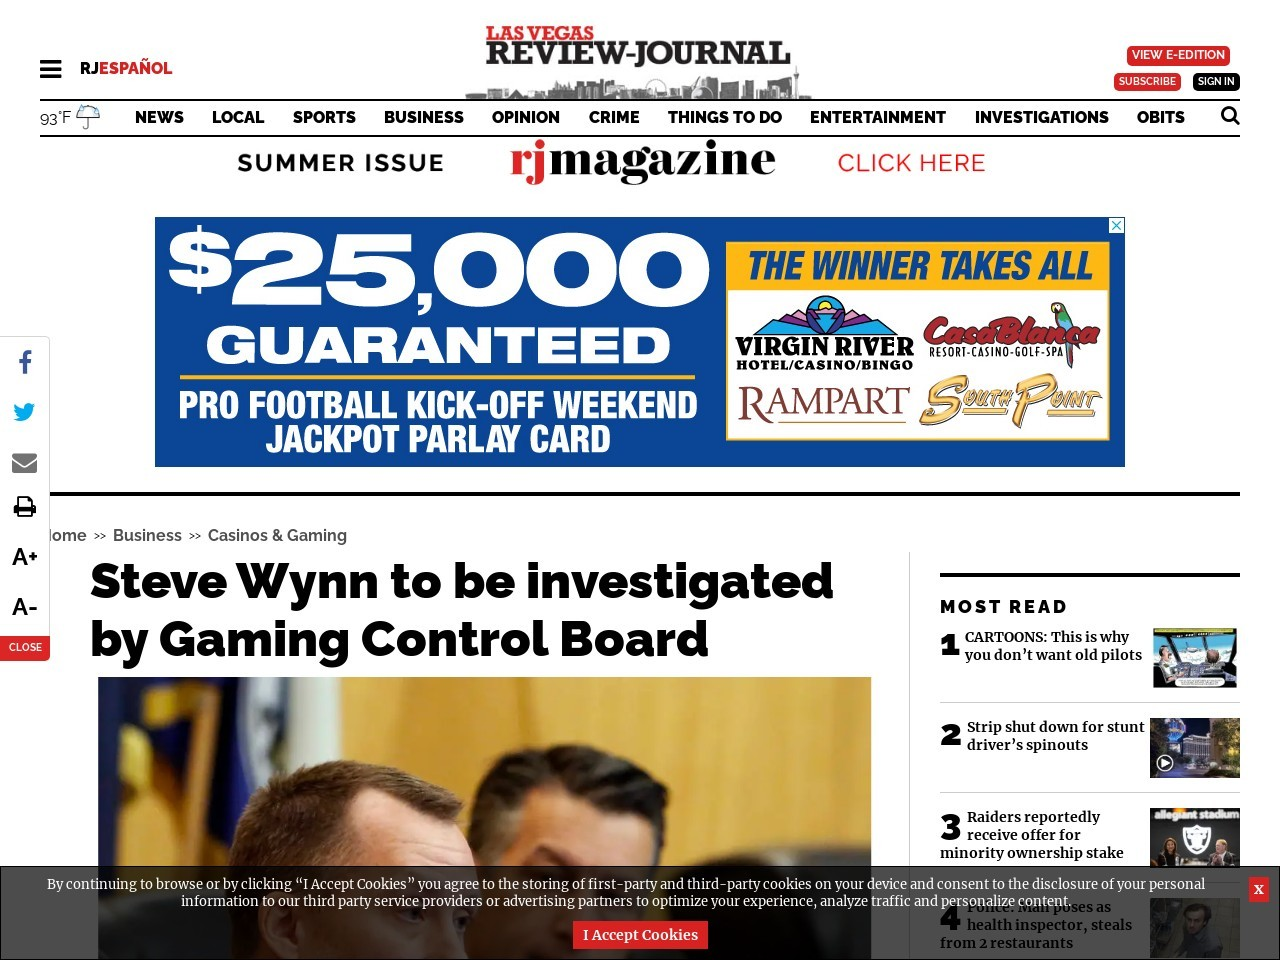 Steve Wynn to be investigated by Gaming Control Board